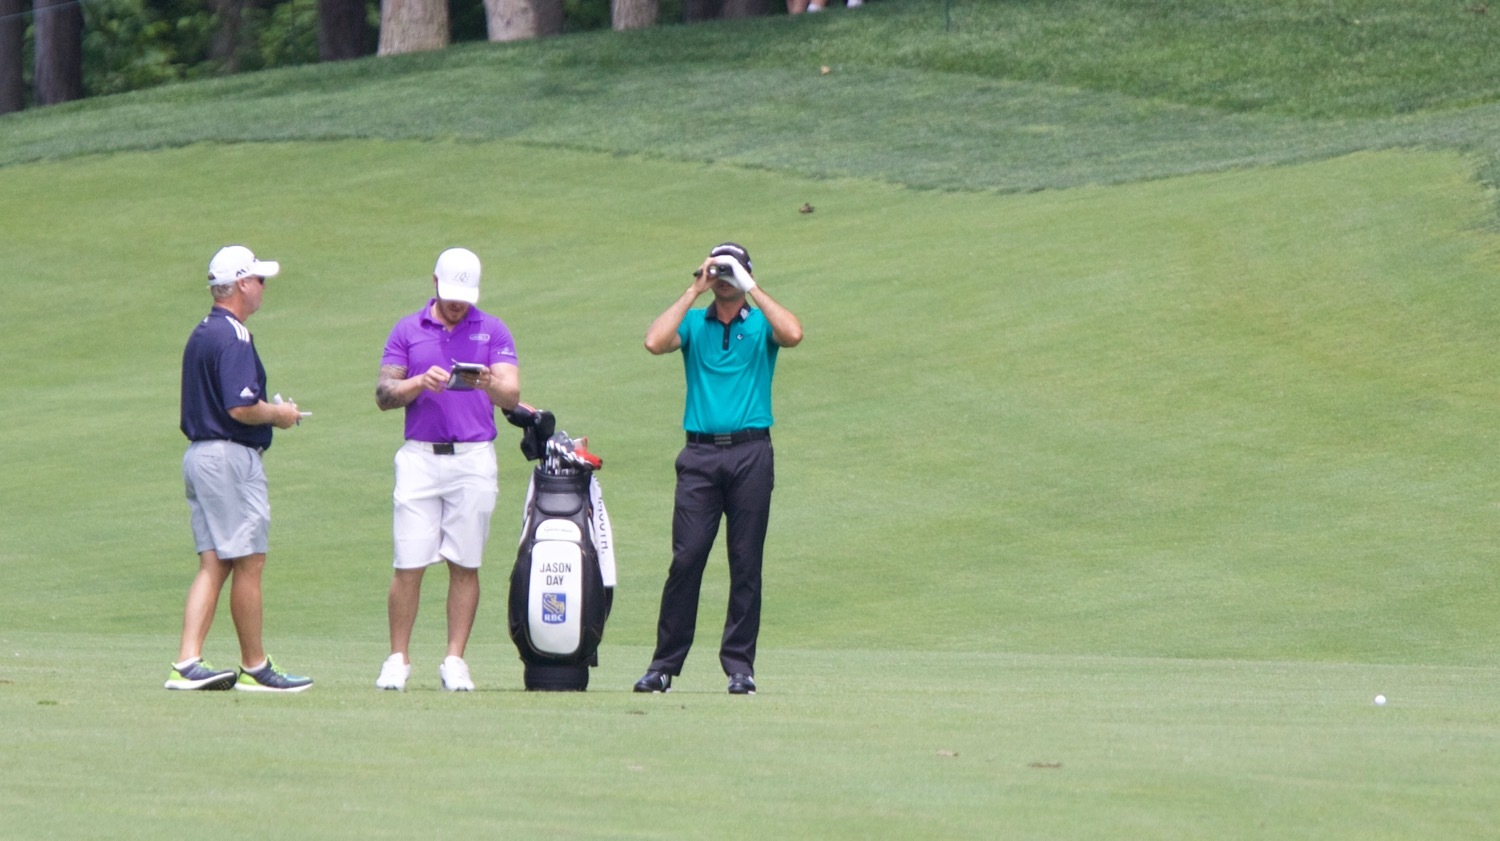 Jason Day Gets the Yardage to 9 Green